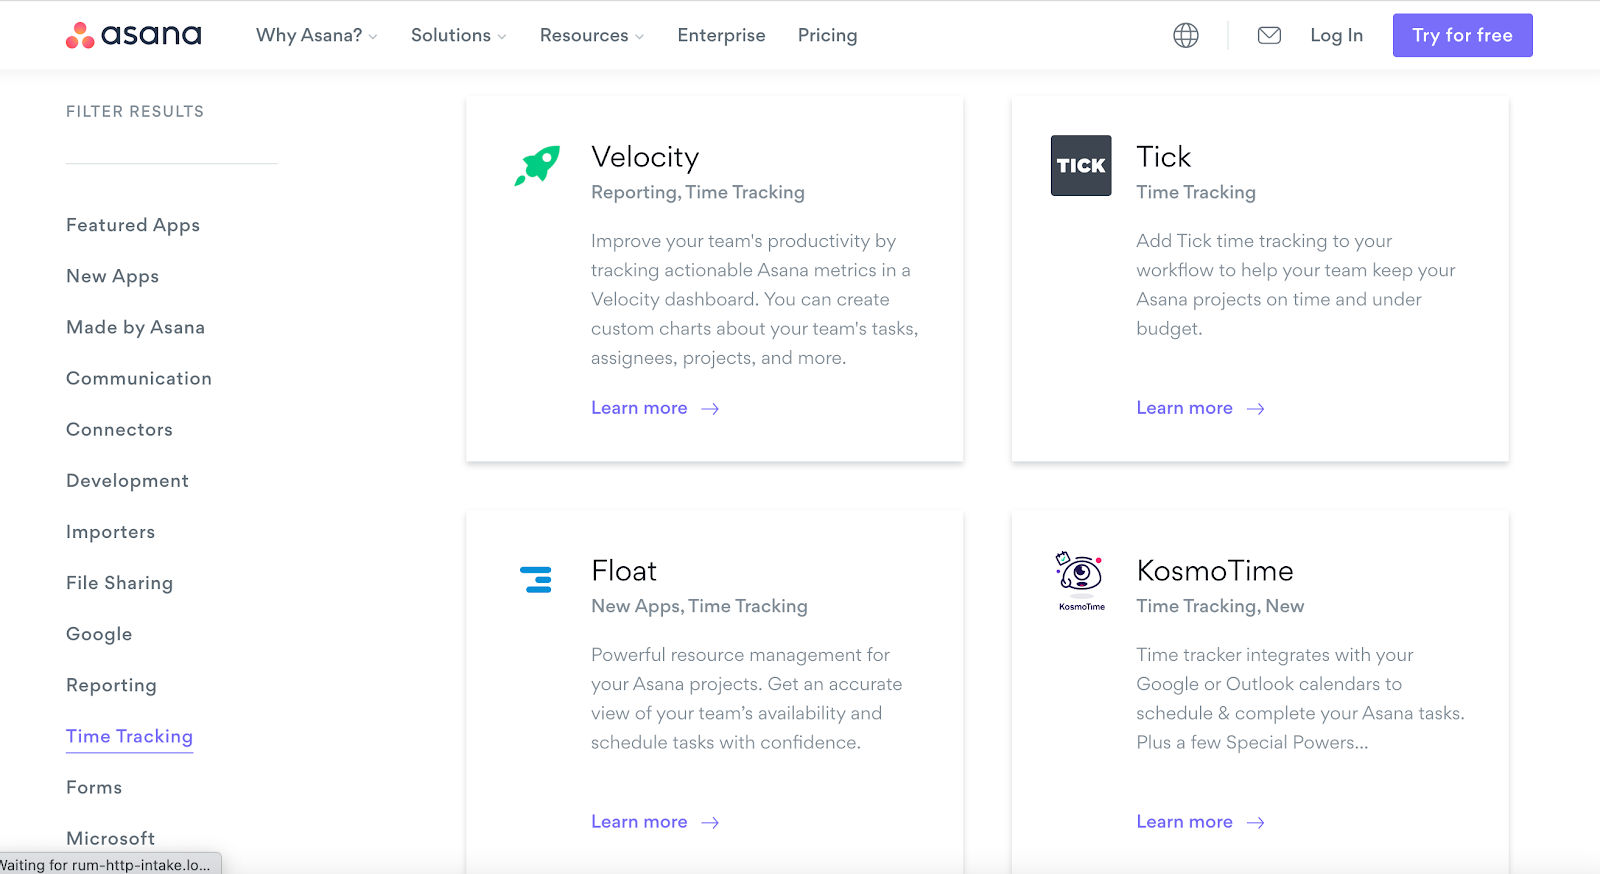 Asana Site - Time Tracking Apps